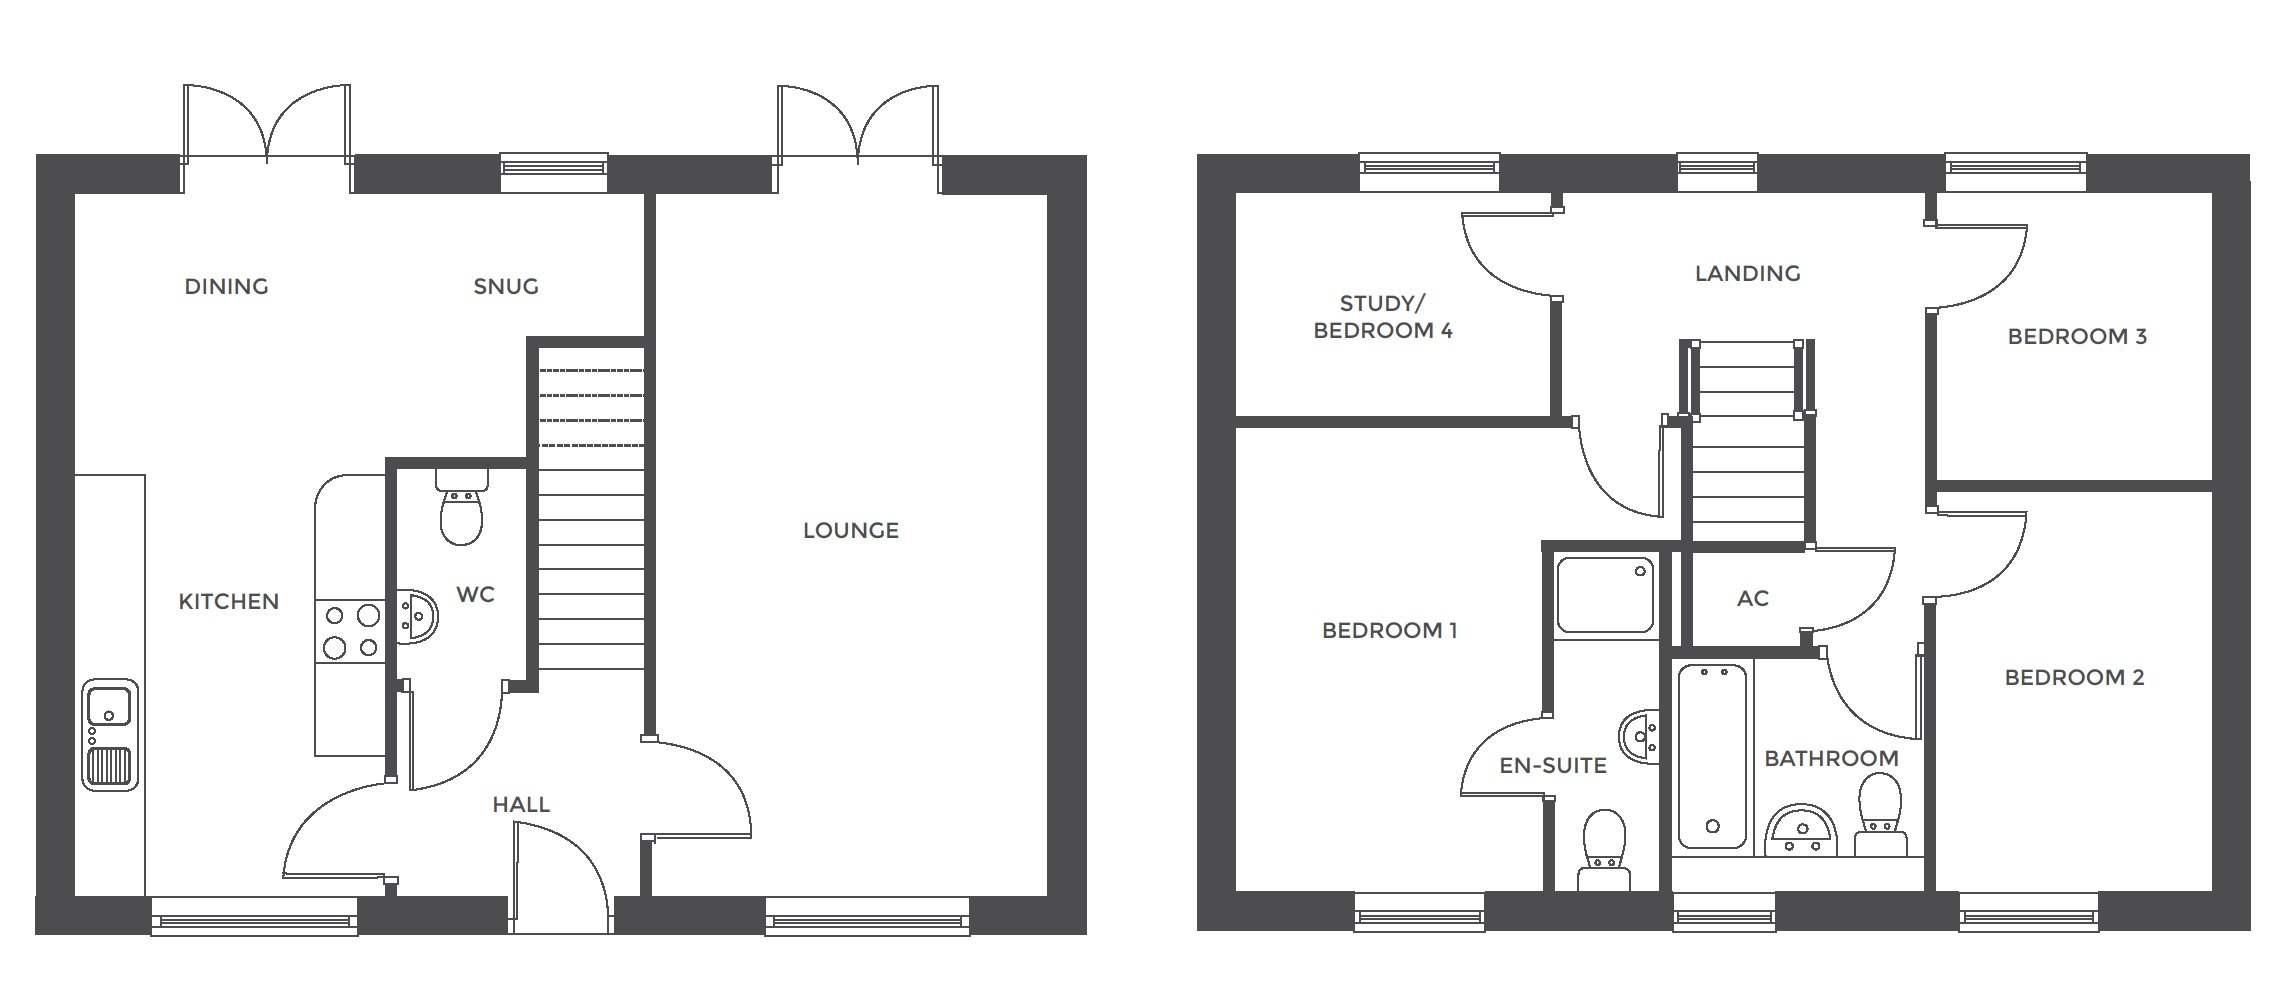 Repington Walk, Plot 17 floor plan